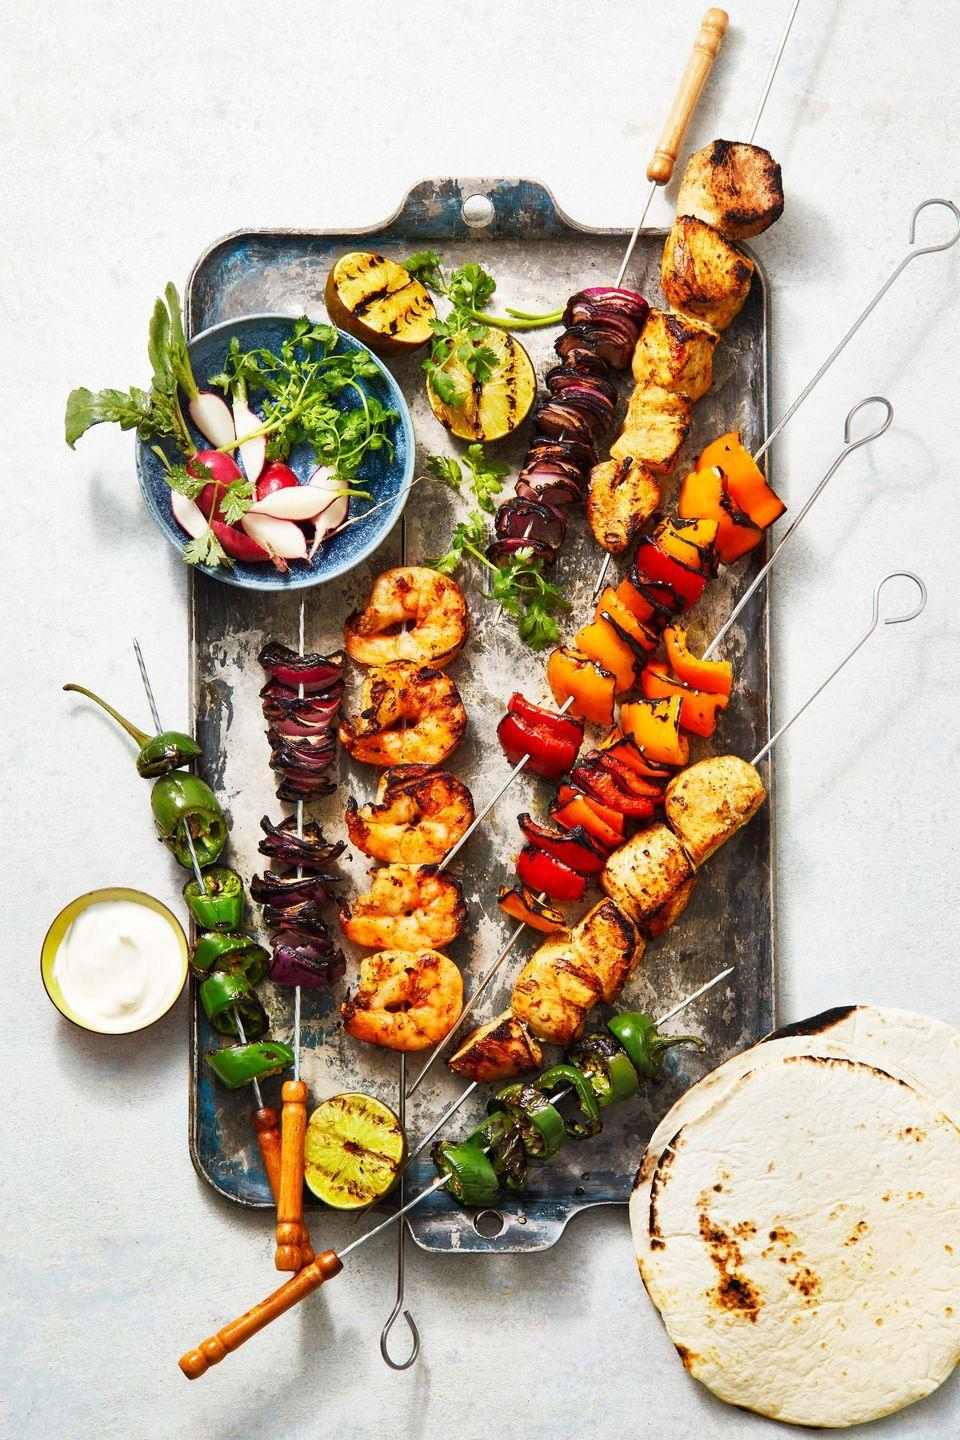 """<p>Loaded with veggies and lean chicken breast, this is a healthy, family-friendly weeknight dinner. </p><p><em><a href=""""https://www.goodhousekeeping.com/food-recipes/a36756280/grilled-chicken-fajitas-recipe/"""" rel=""""nofollow noopener"""" target=""""_blank"""" data-ylk=""""slk:Get the recipe for Grilled Chicken Fajitas »"""" class=""""link rapid-noclick-resp"""">Get the recipe for Grilled Chicken Fajitas »</a></em></p>"""